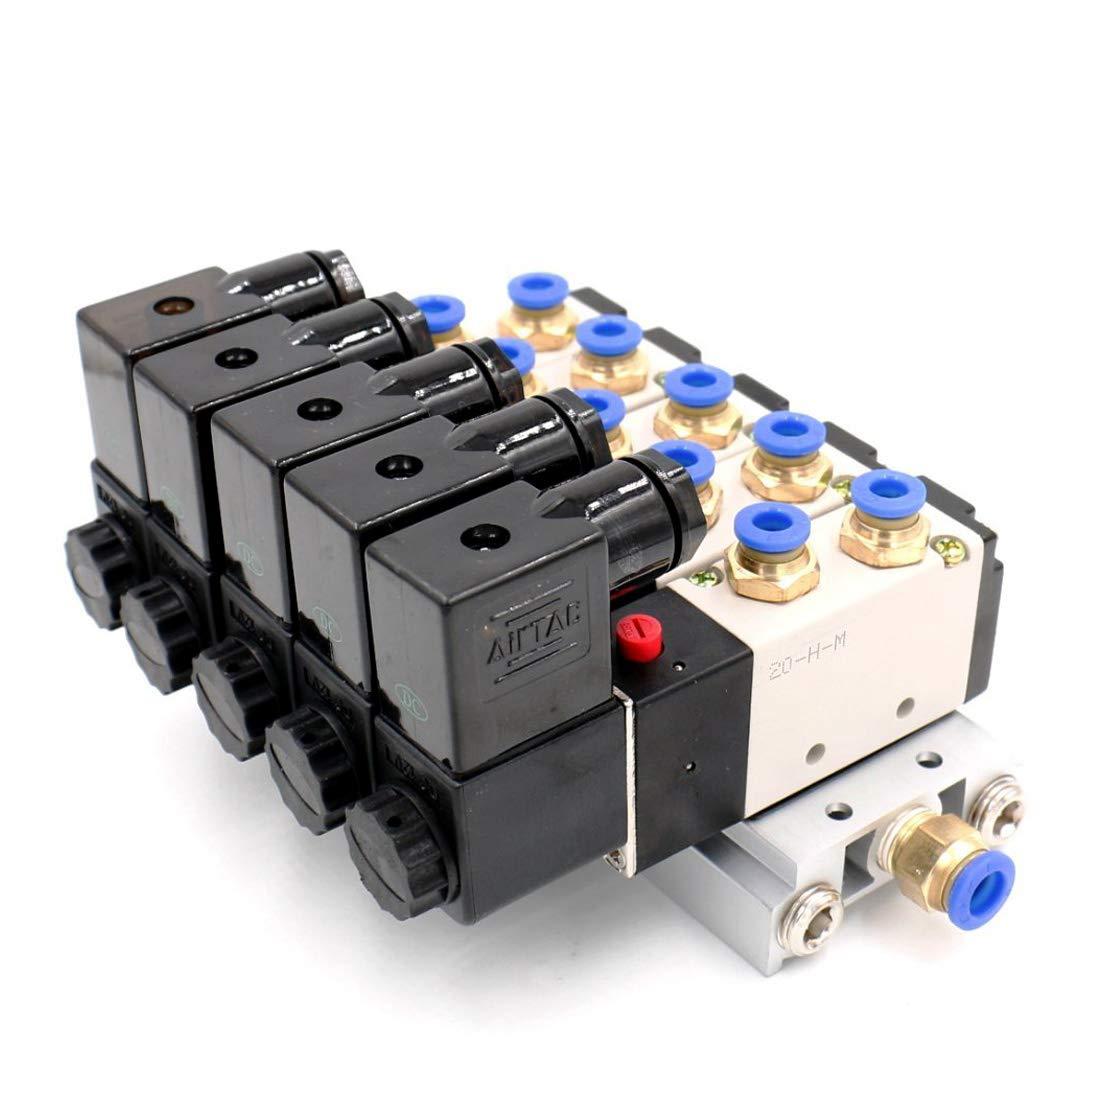 Woljay Pneumatic Solenoid Air Valve 4V210-08 AC 24V PT 1//4 2 Position 5 Way Normally Closed 5 Pneumatic Solenoid with Base Quick Fittings Muffler Set